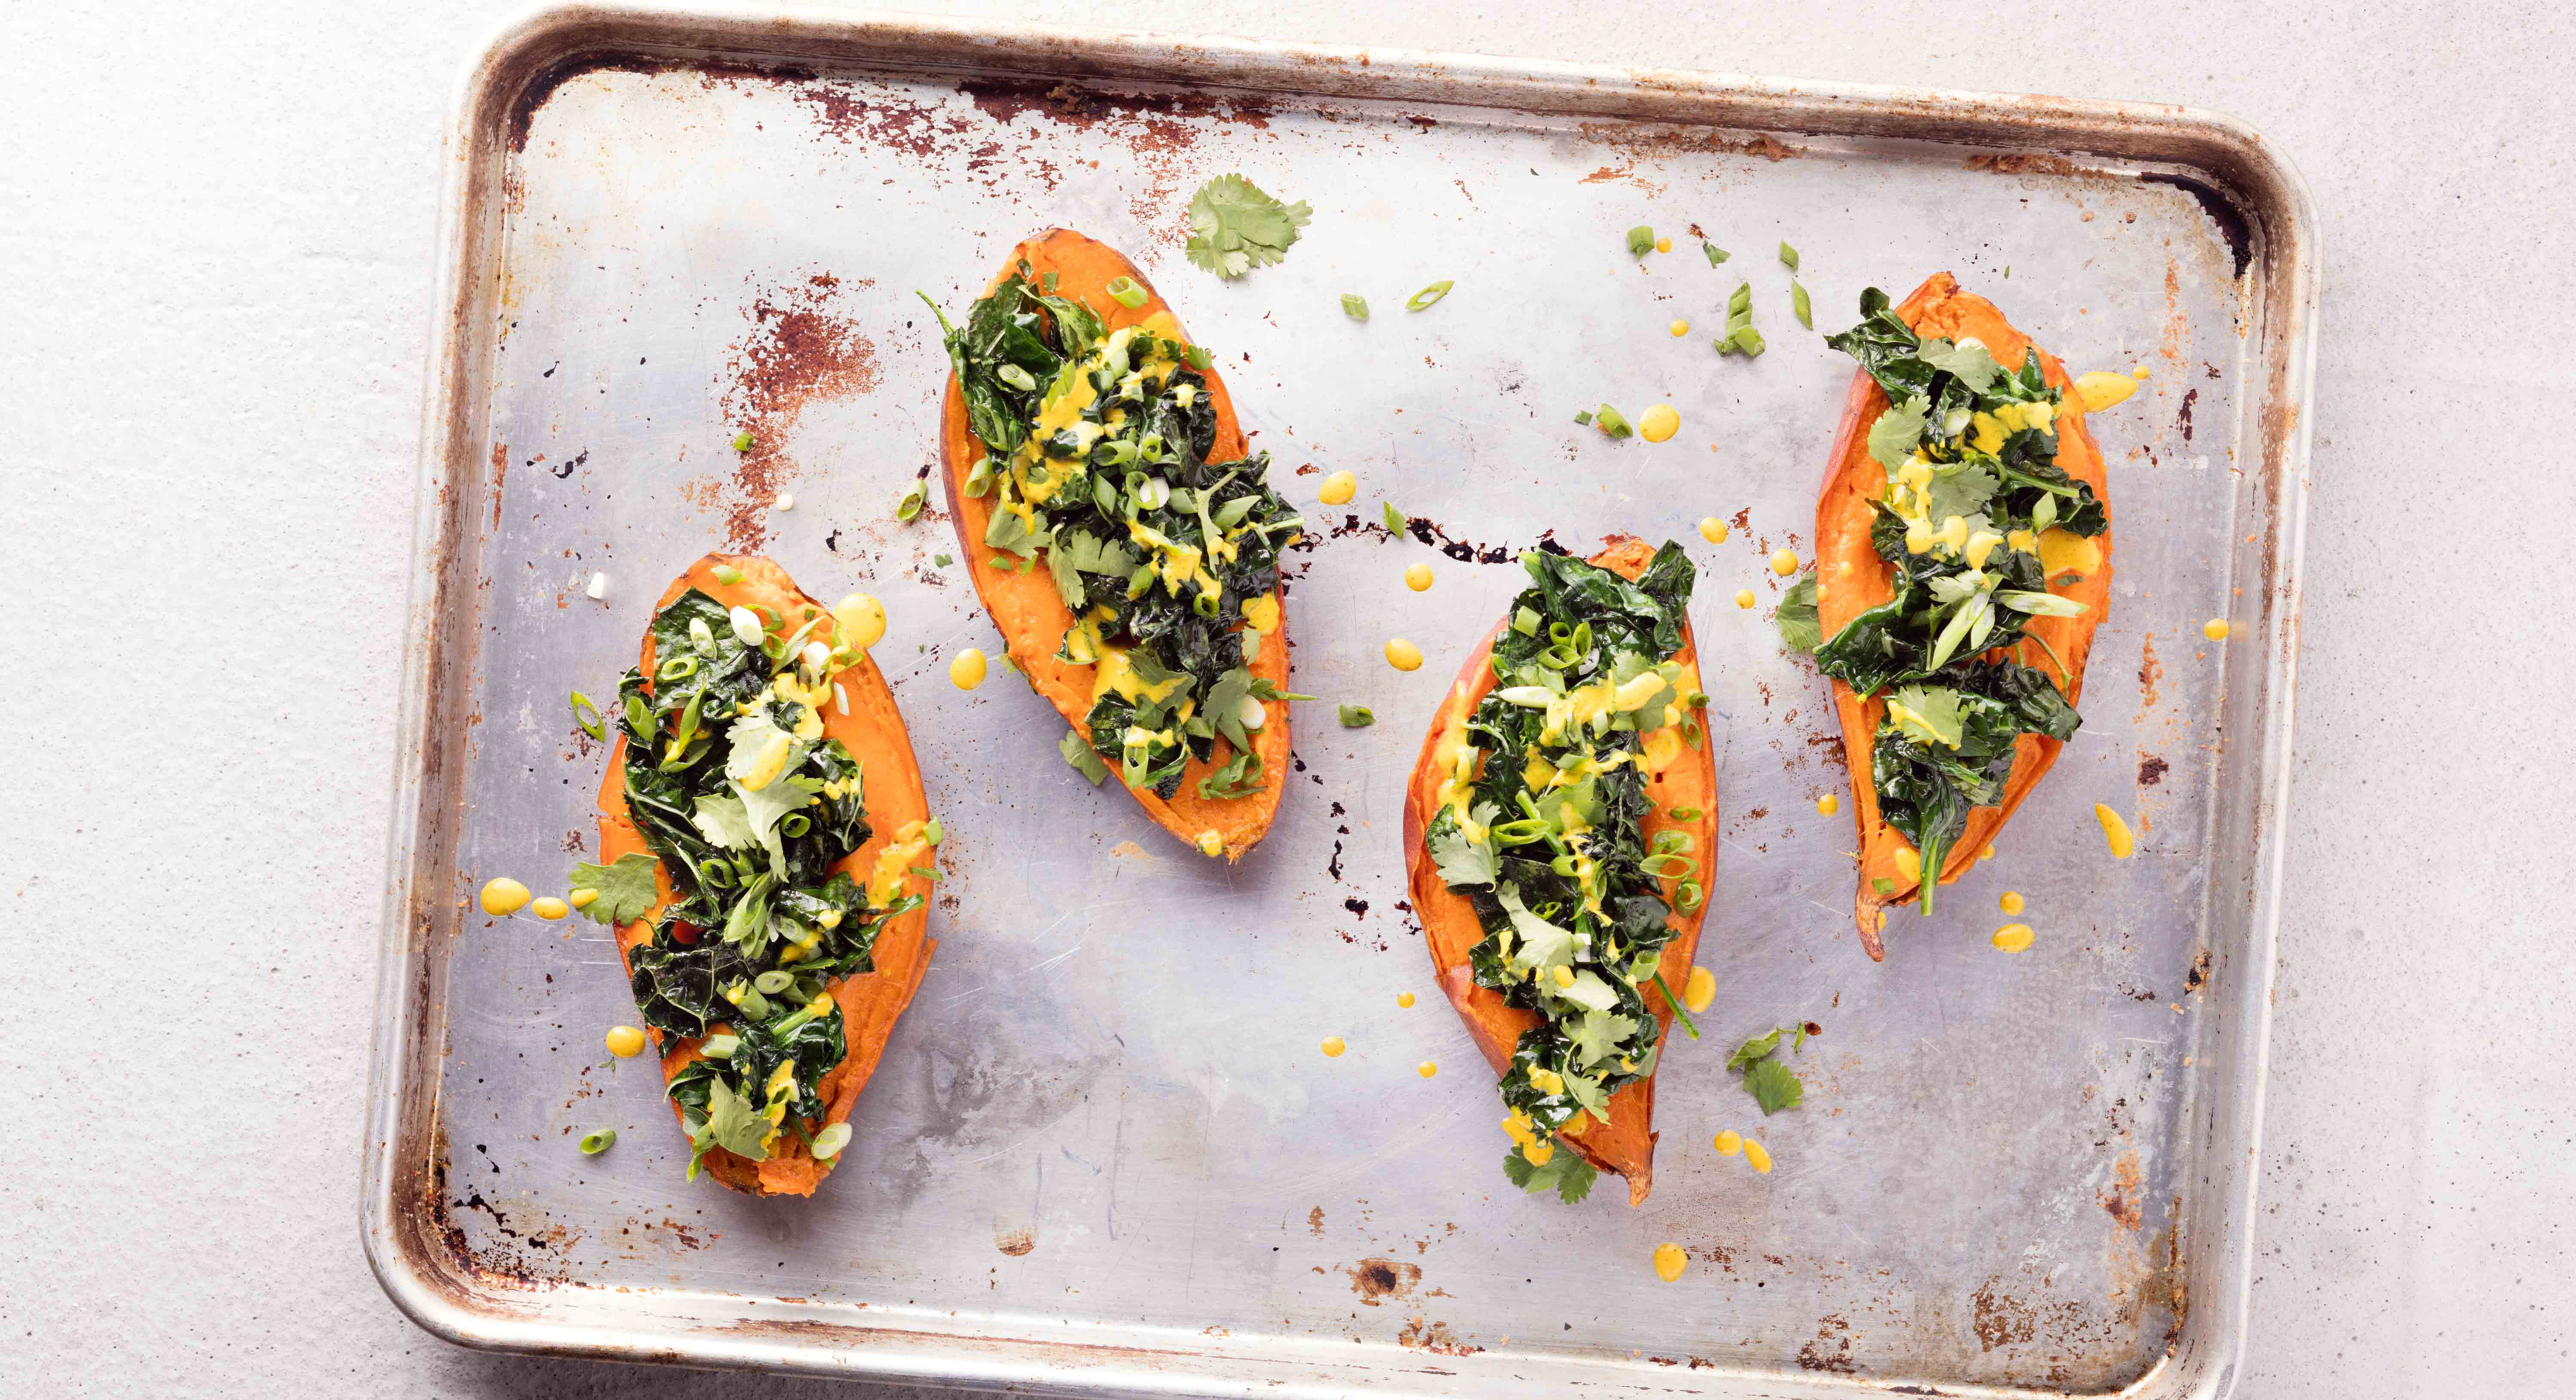 Stuffed Sweet Potatoes Get a Big Upgrade With Avocado and Tahini-Turmeric Dressing